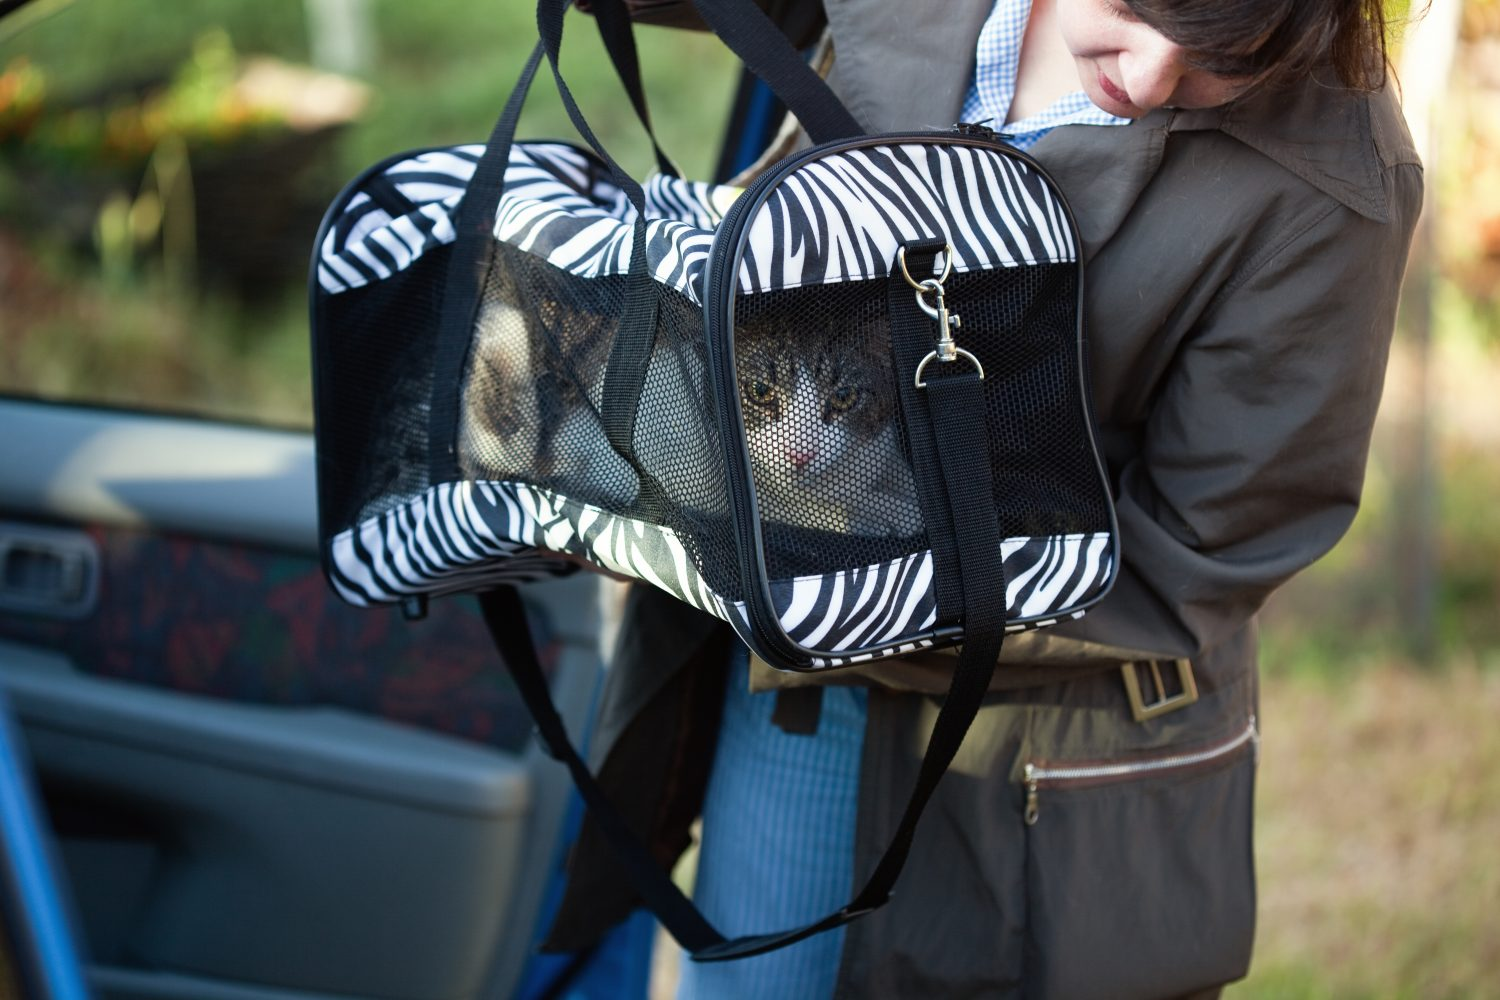 Packing cat for evacuation.